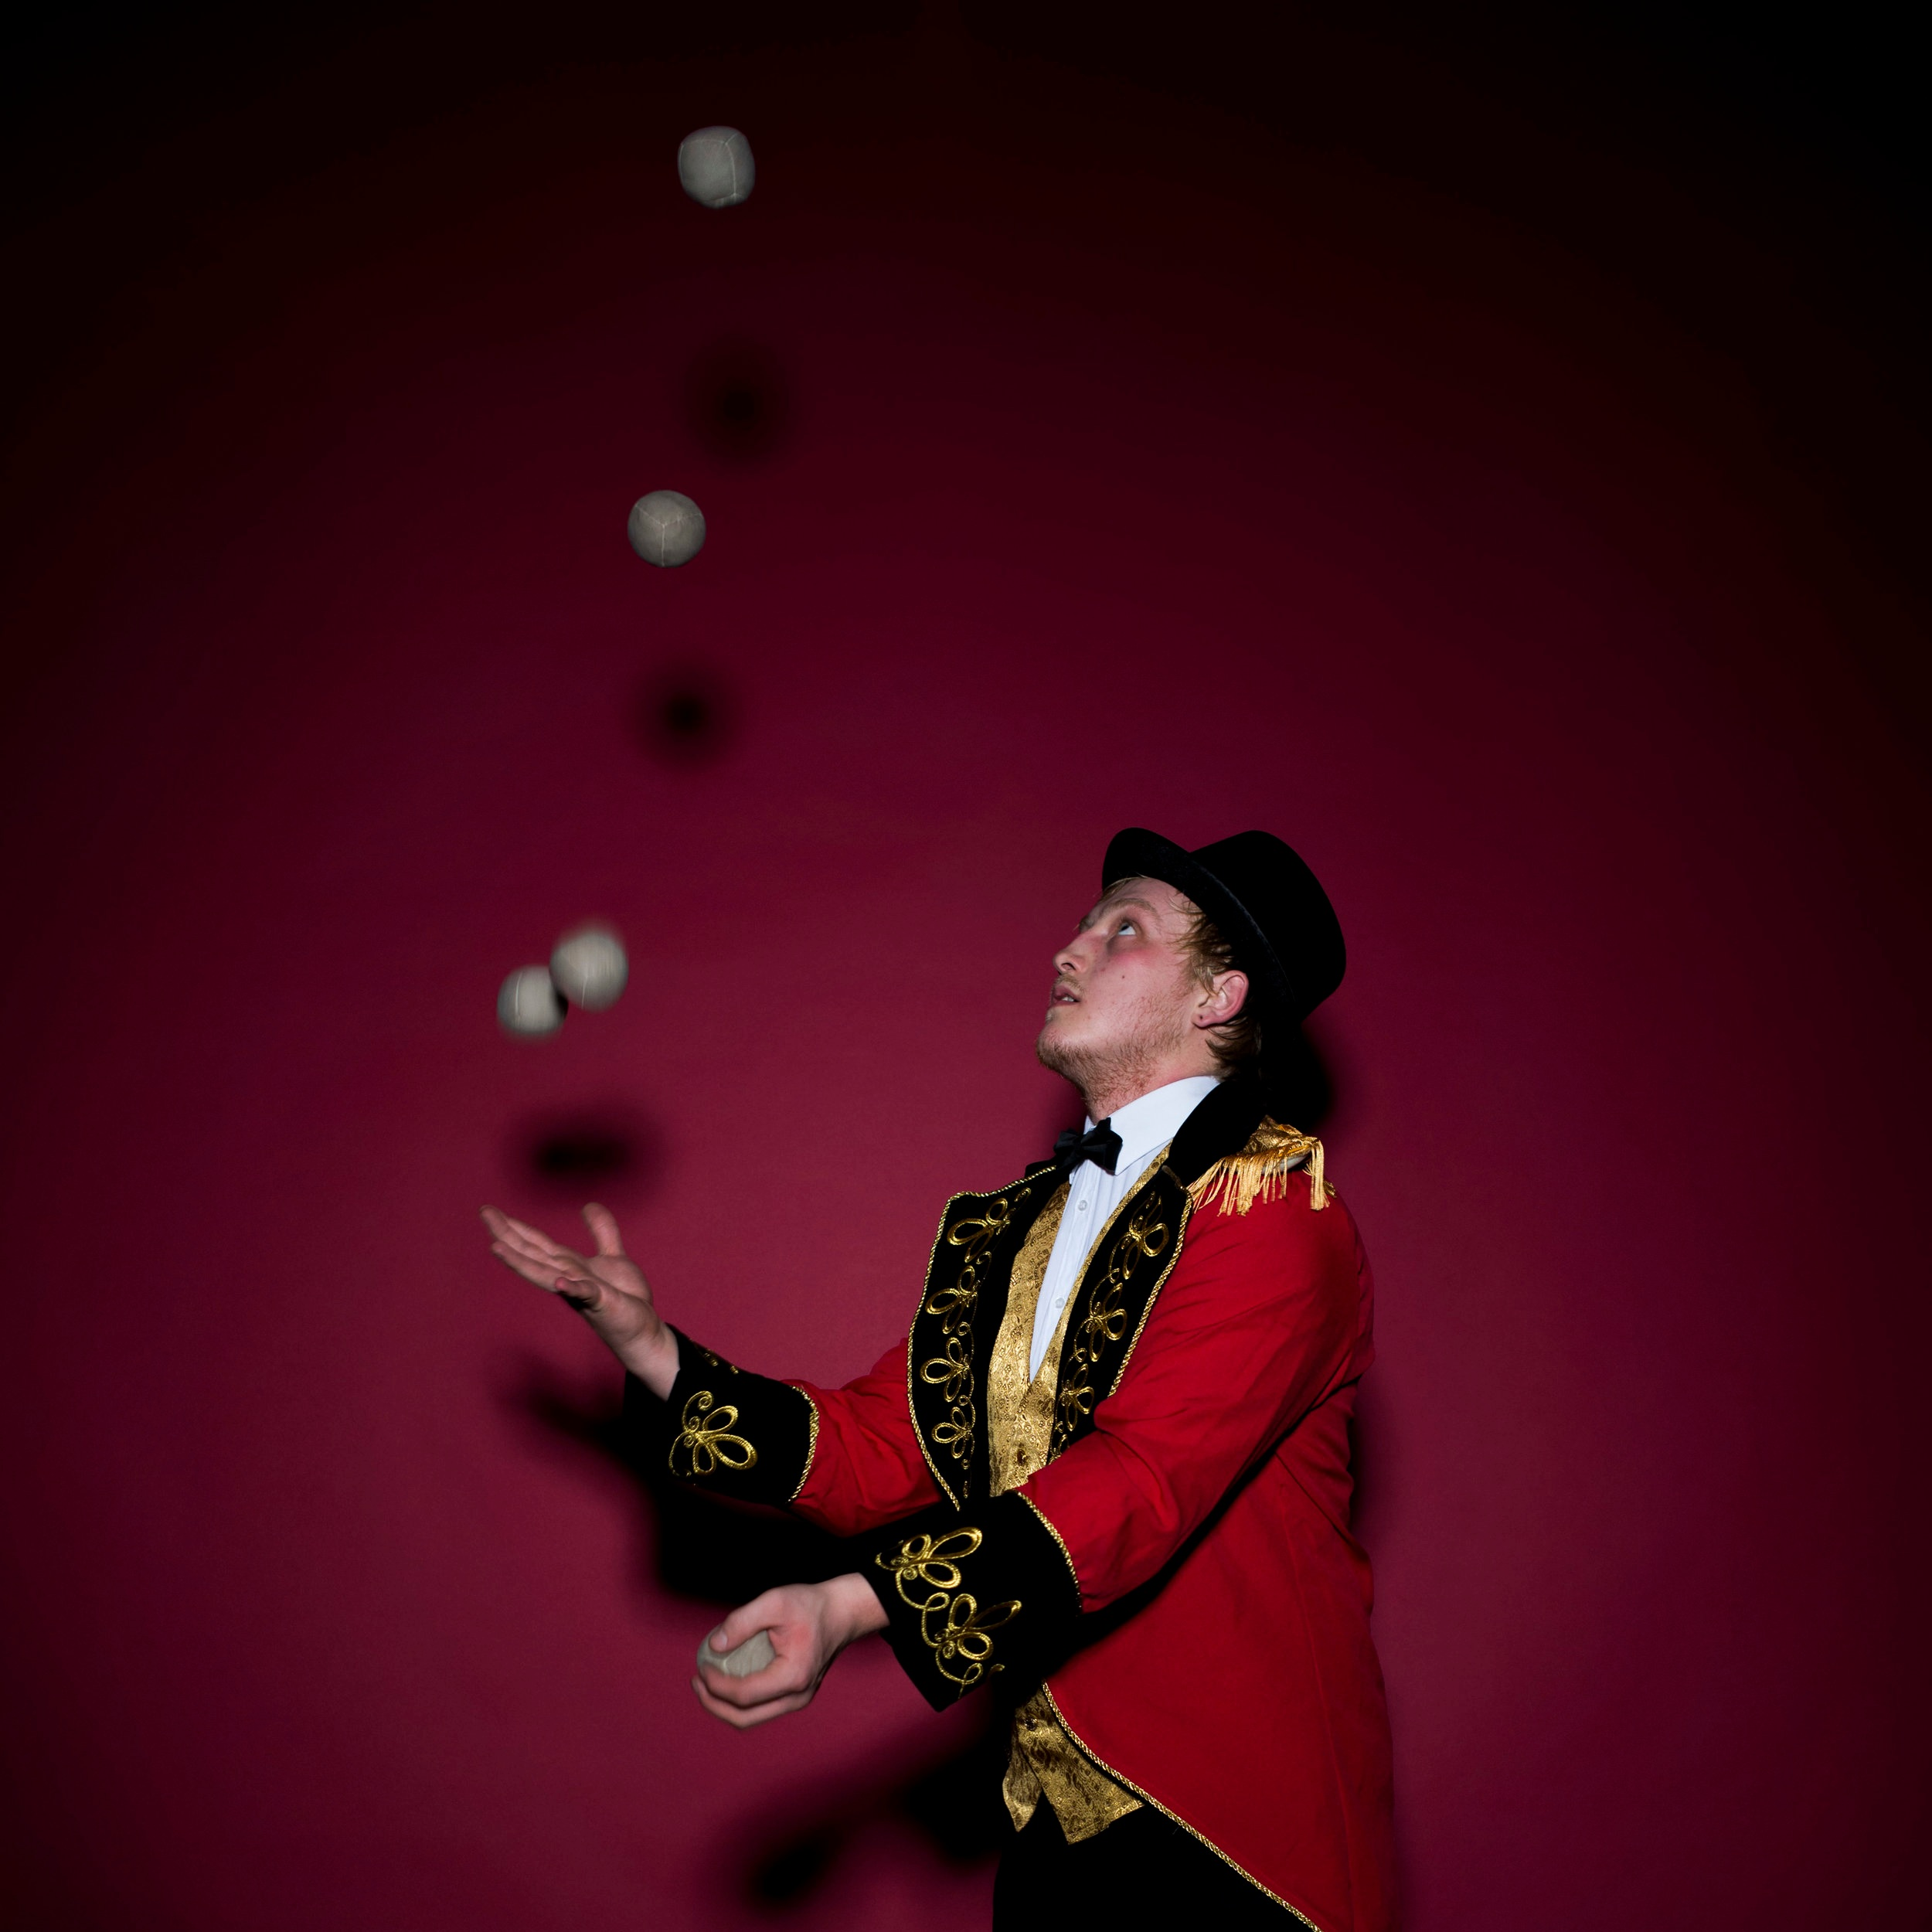 diabolo and juggling